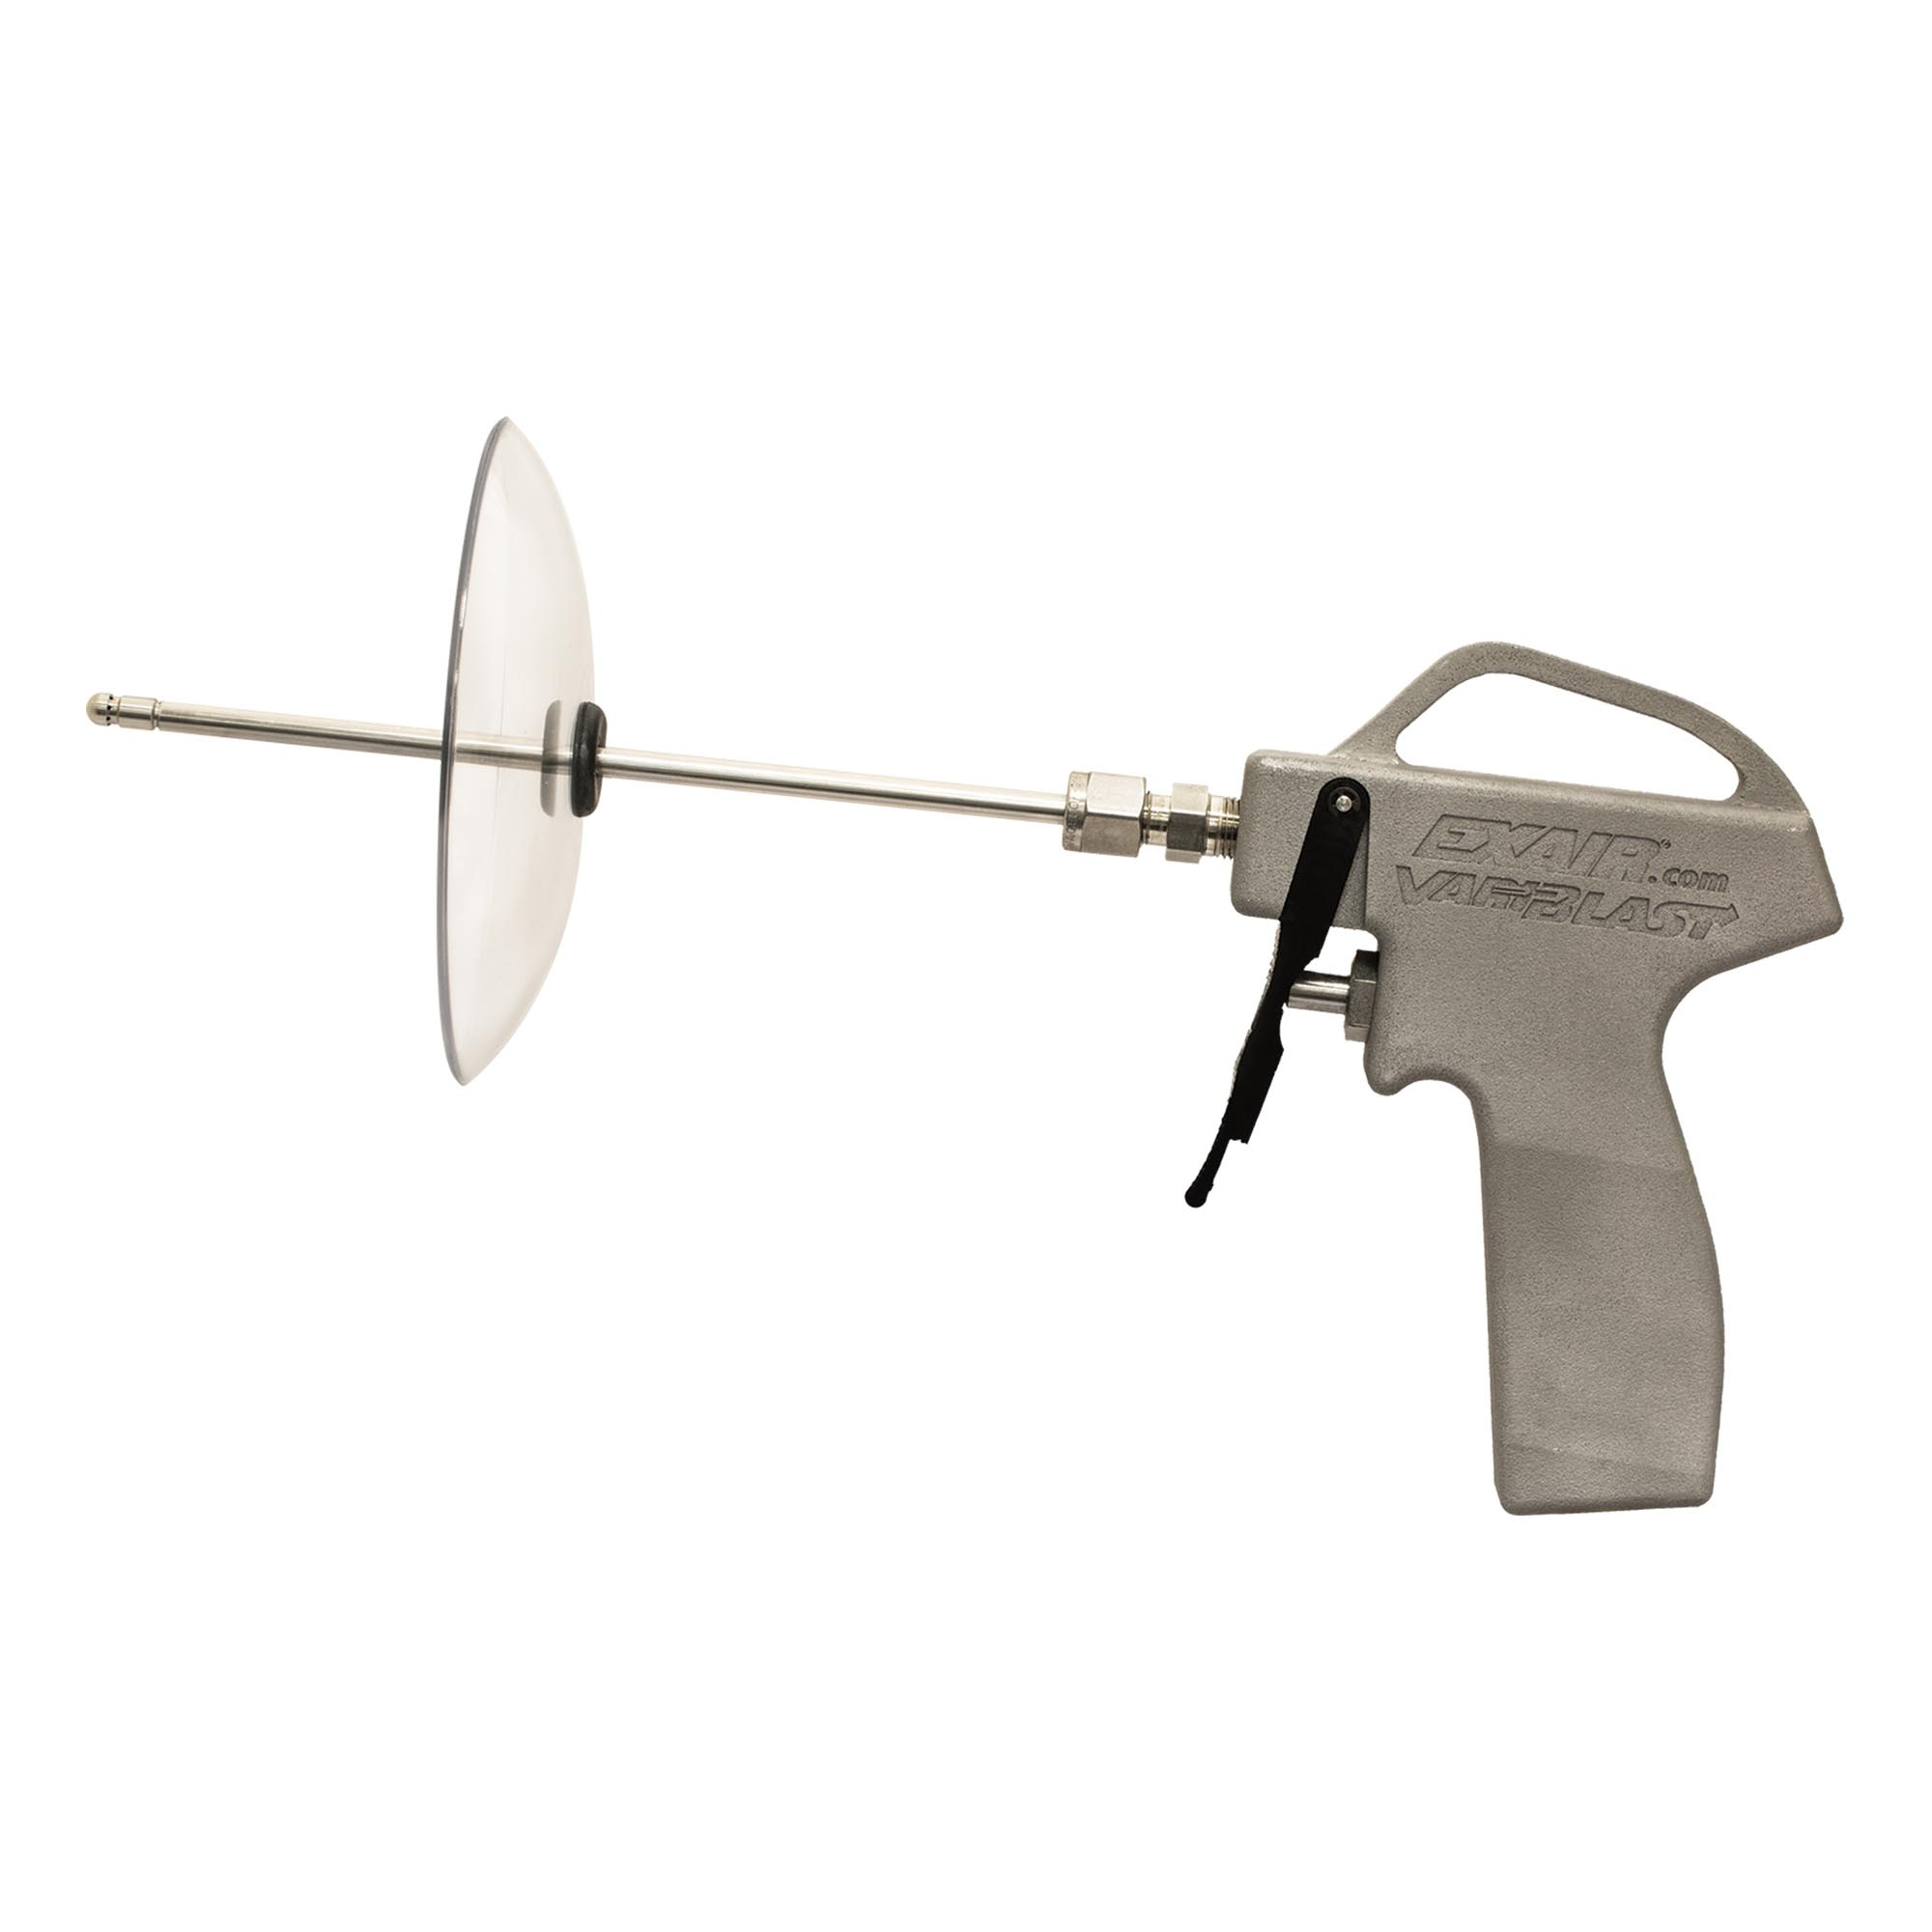 "Model 1604SS-12-CS Variblast Compact Safety Air Gun with Model 1004SS Back Blow Air Nozzle, 12"" Alum. Ext Pipe & Chip Shield"